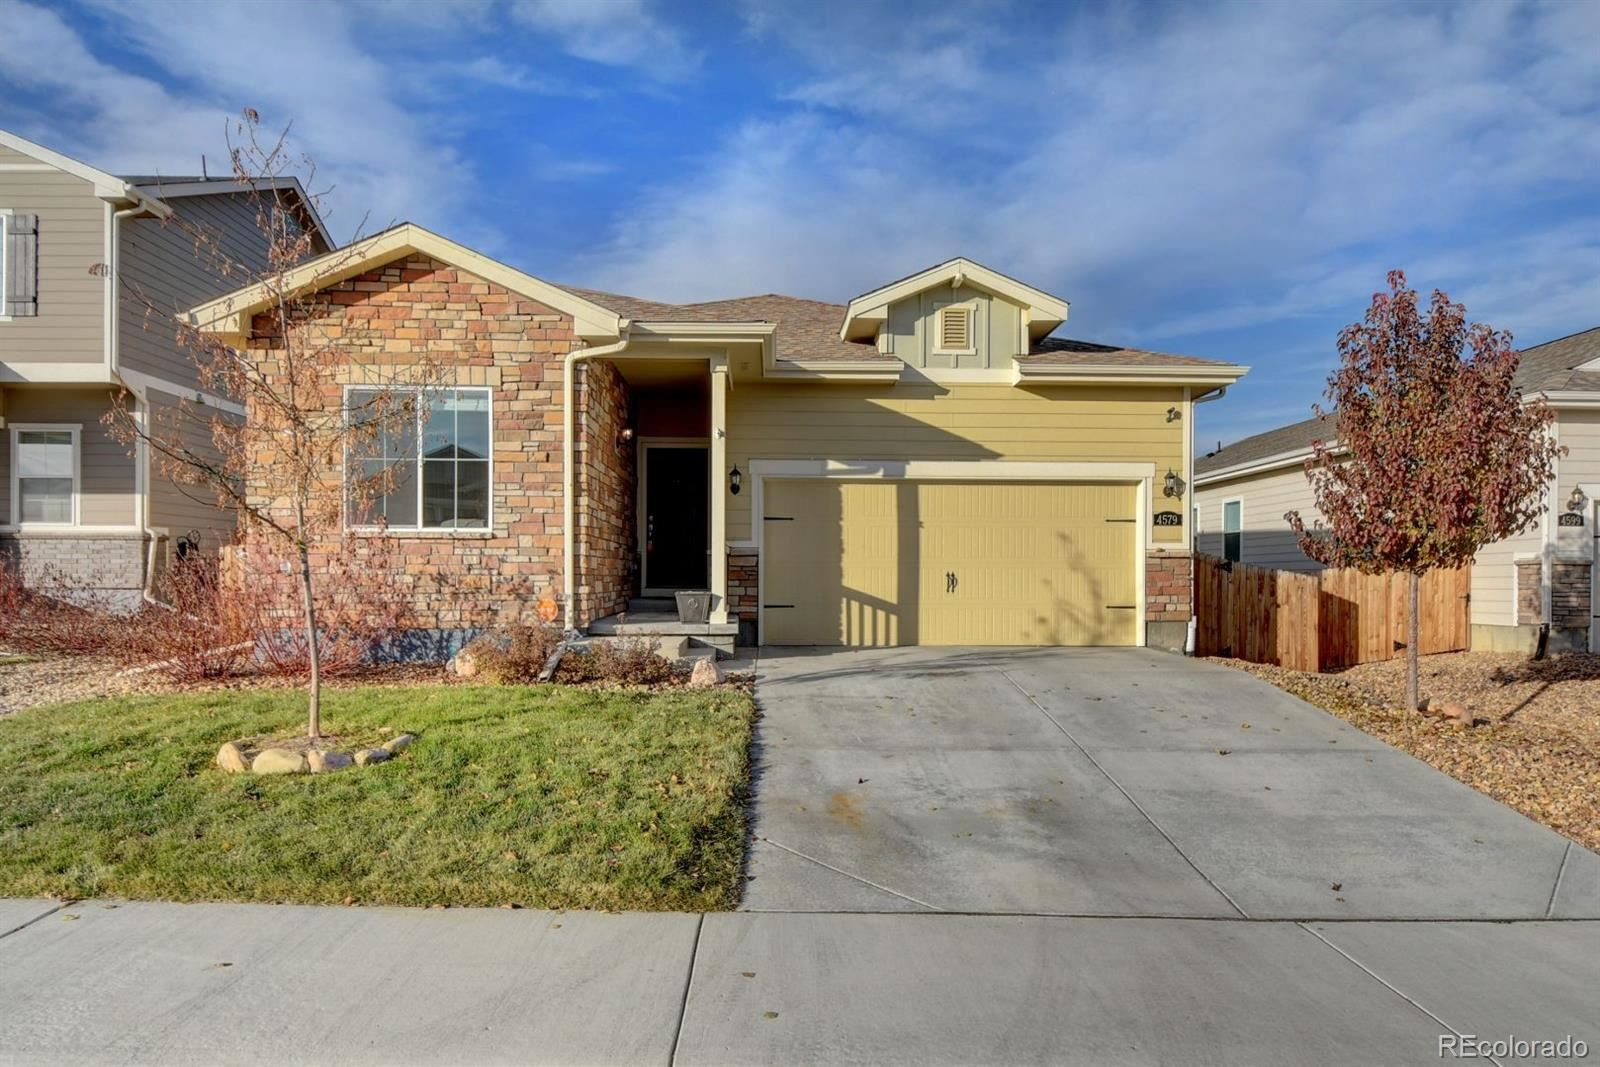 4579 E 95th Court, Thornton, CO 80229 - #: 9892681